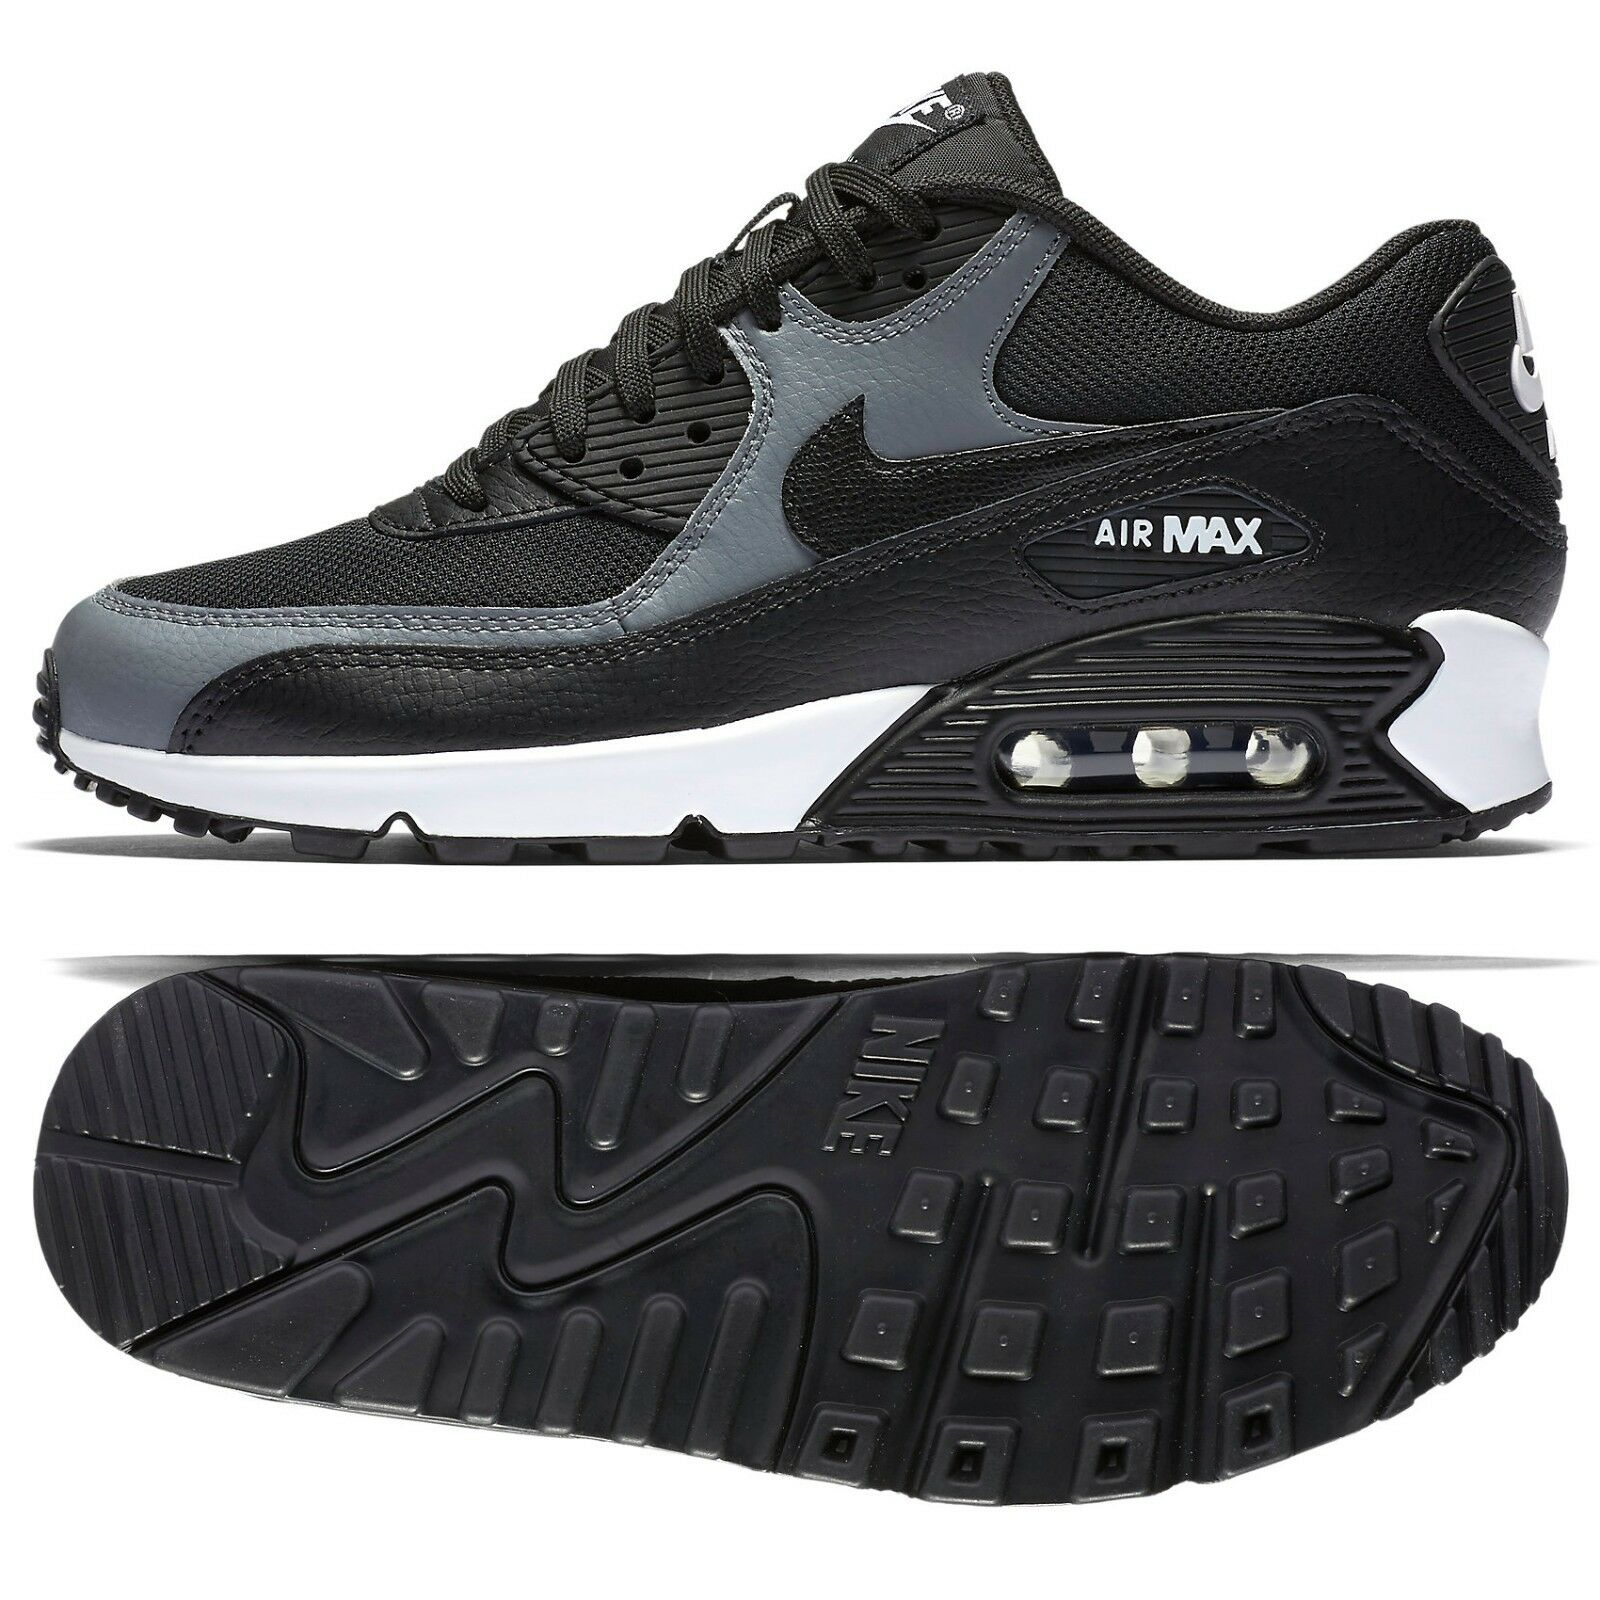 Nike WMNS Air Max 90 BlackCool Grey 325213 037 Leather Women's Running Shoes